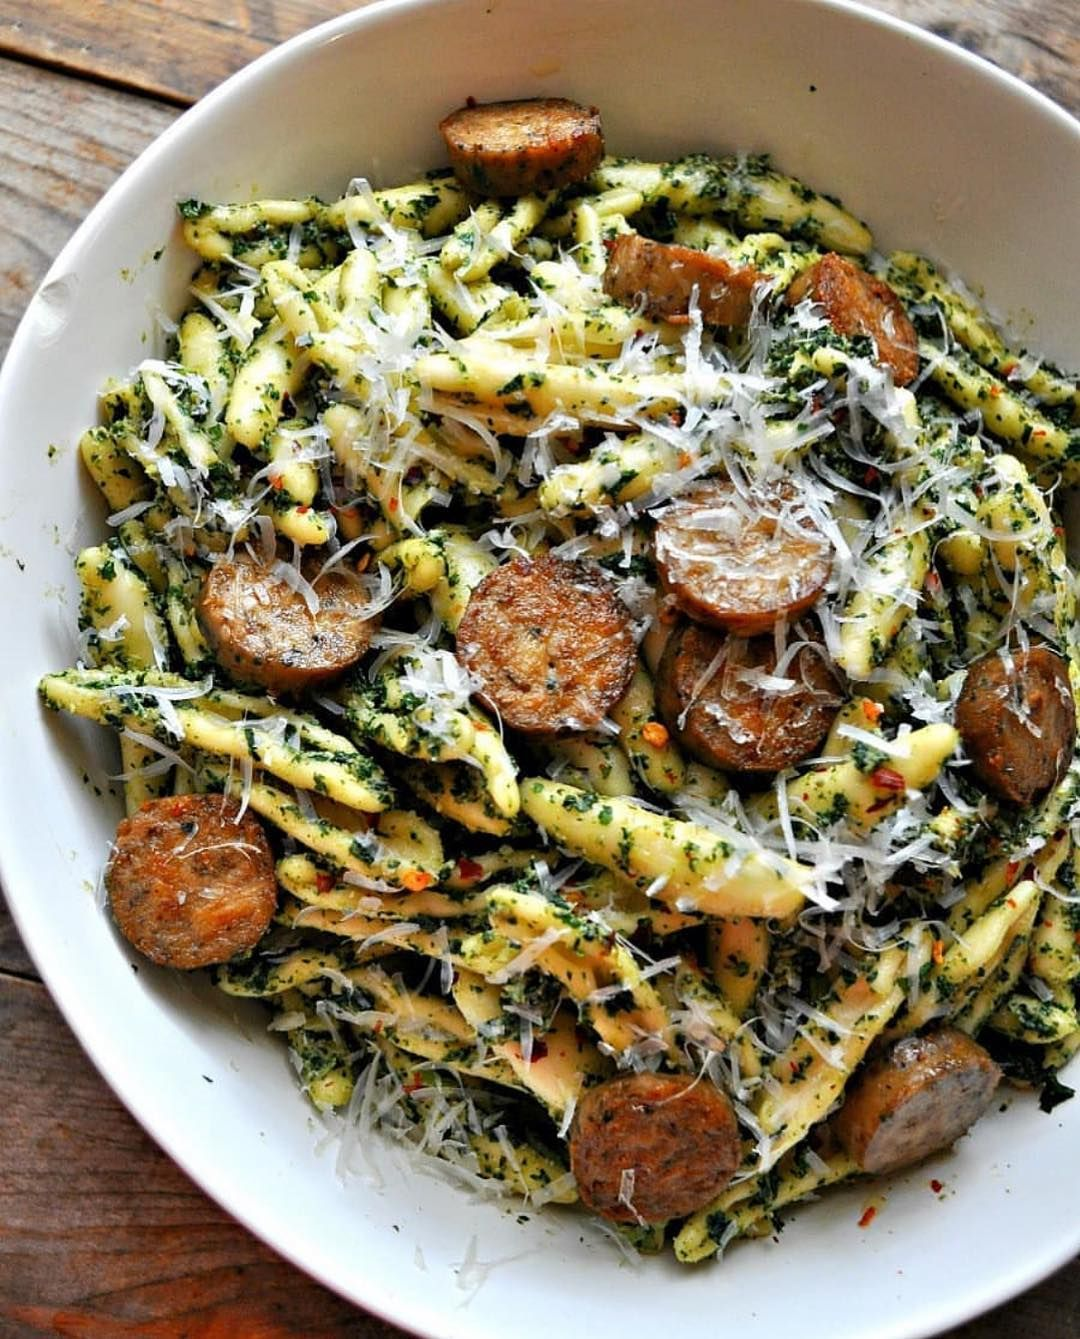 Vegan Roasted Kale Pesto With Sausage Dont Be Tricked